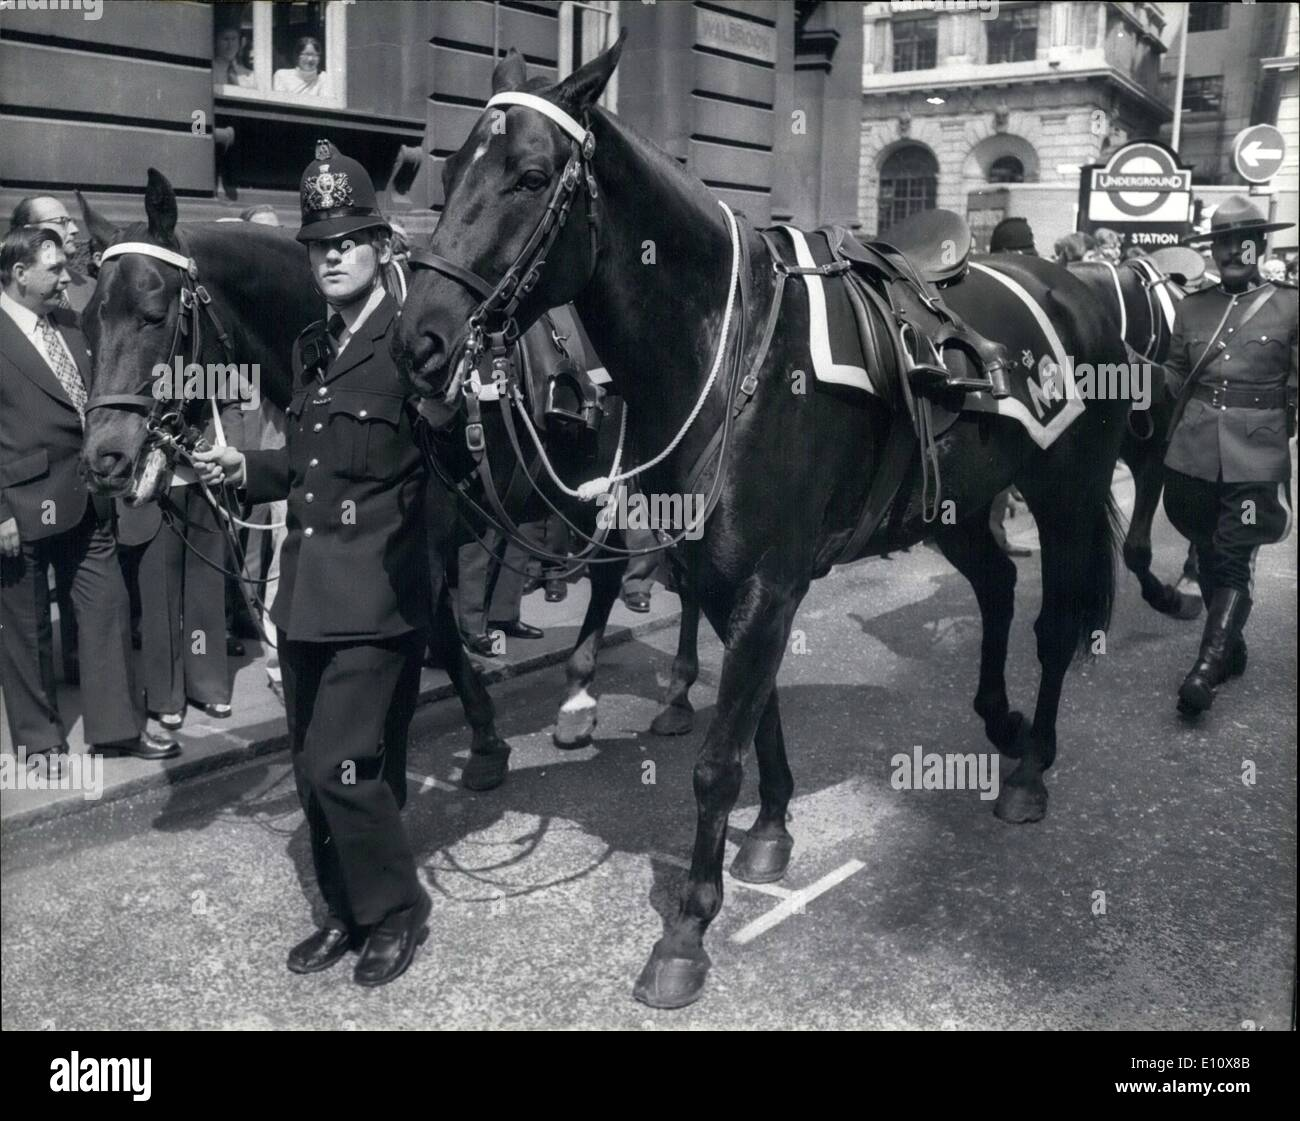 May 05, 1974 - Royal Canadian Mountain Police Visit The City: A detachment of the Royal Canadian Mounted Police today visited the City of London, and at the Mansion House they were inspected by the Lord Mayor Of London, Sir Hugh Wontner, who afterwards received them inside the Mansion House. Photo Shows After dismounting from their horses to g inside the Mansion House, the mounties' Horses were led away by a London policeman. - Stock Image